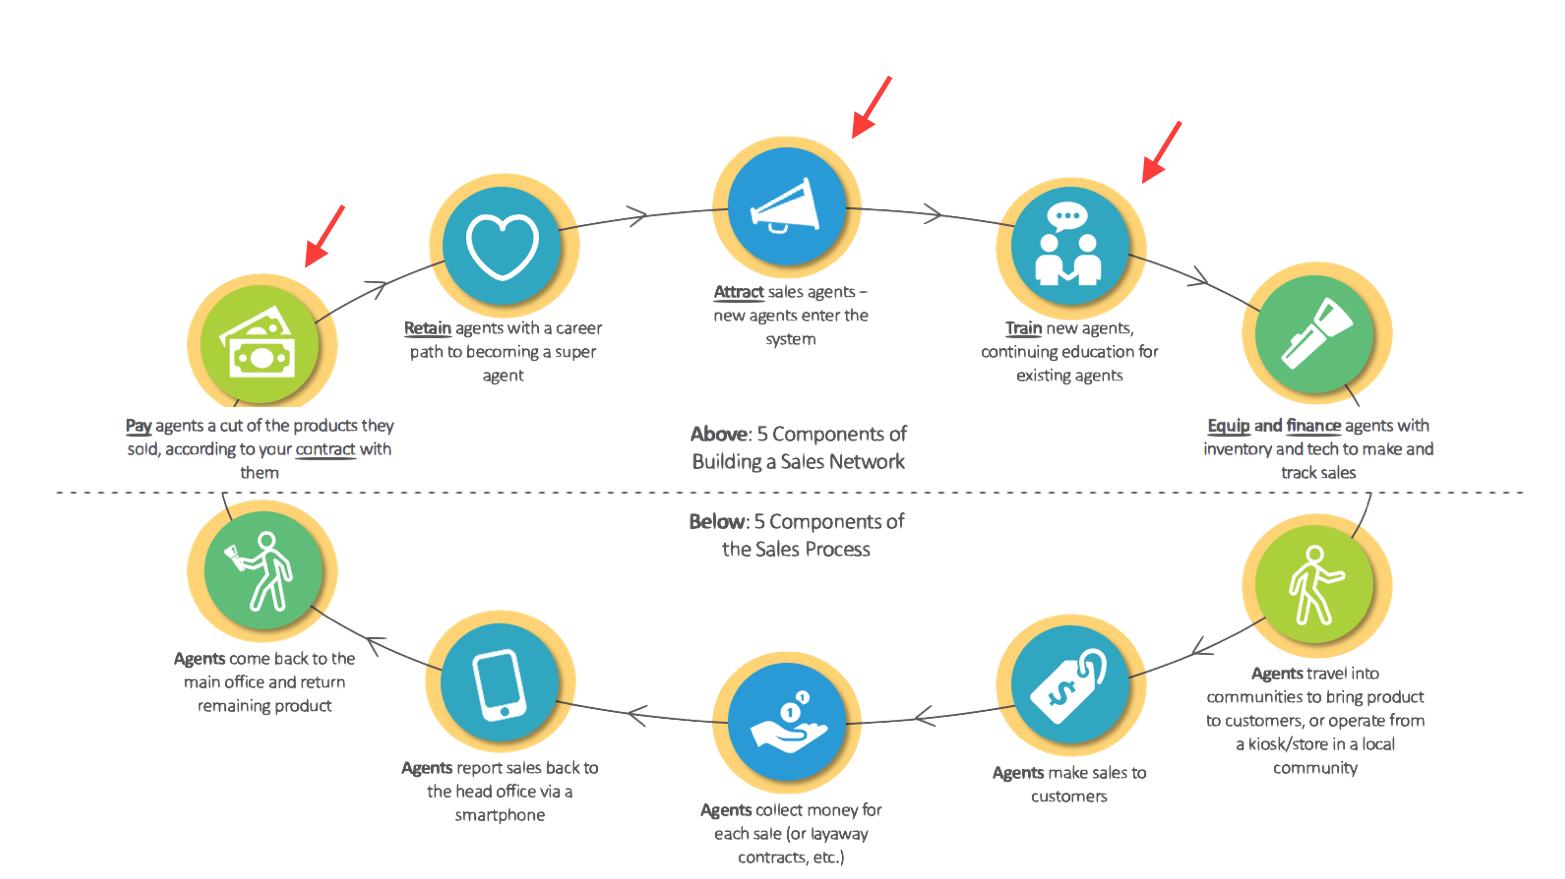 Figure 1: Building a Sales Network and Completing the Sales Process (Source : Last Mile Distribution Playbook ) *Arrows indicate areas of research focus